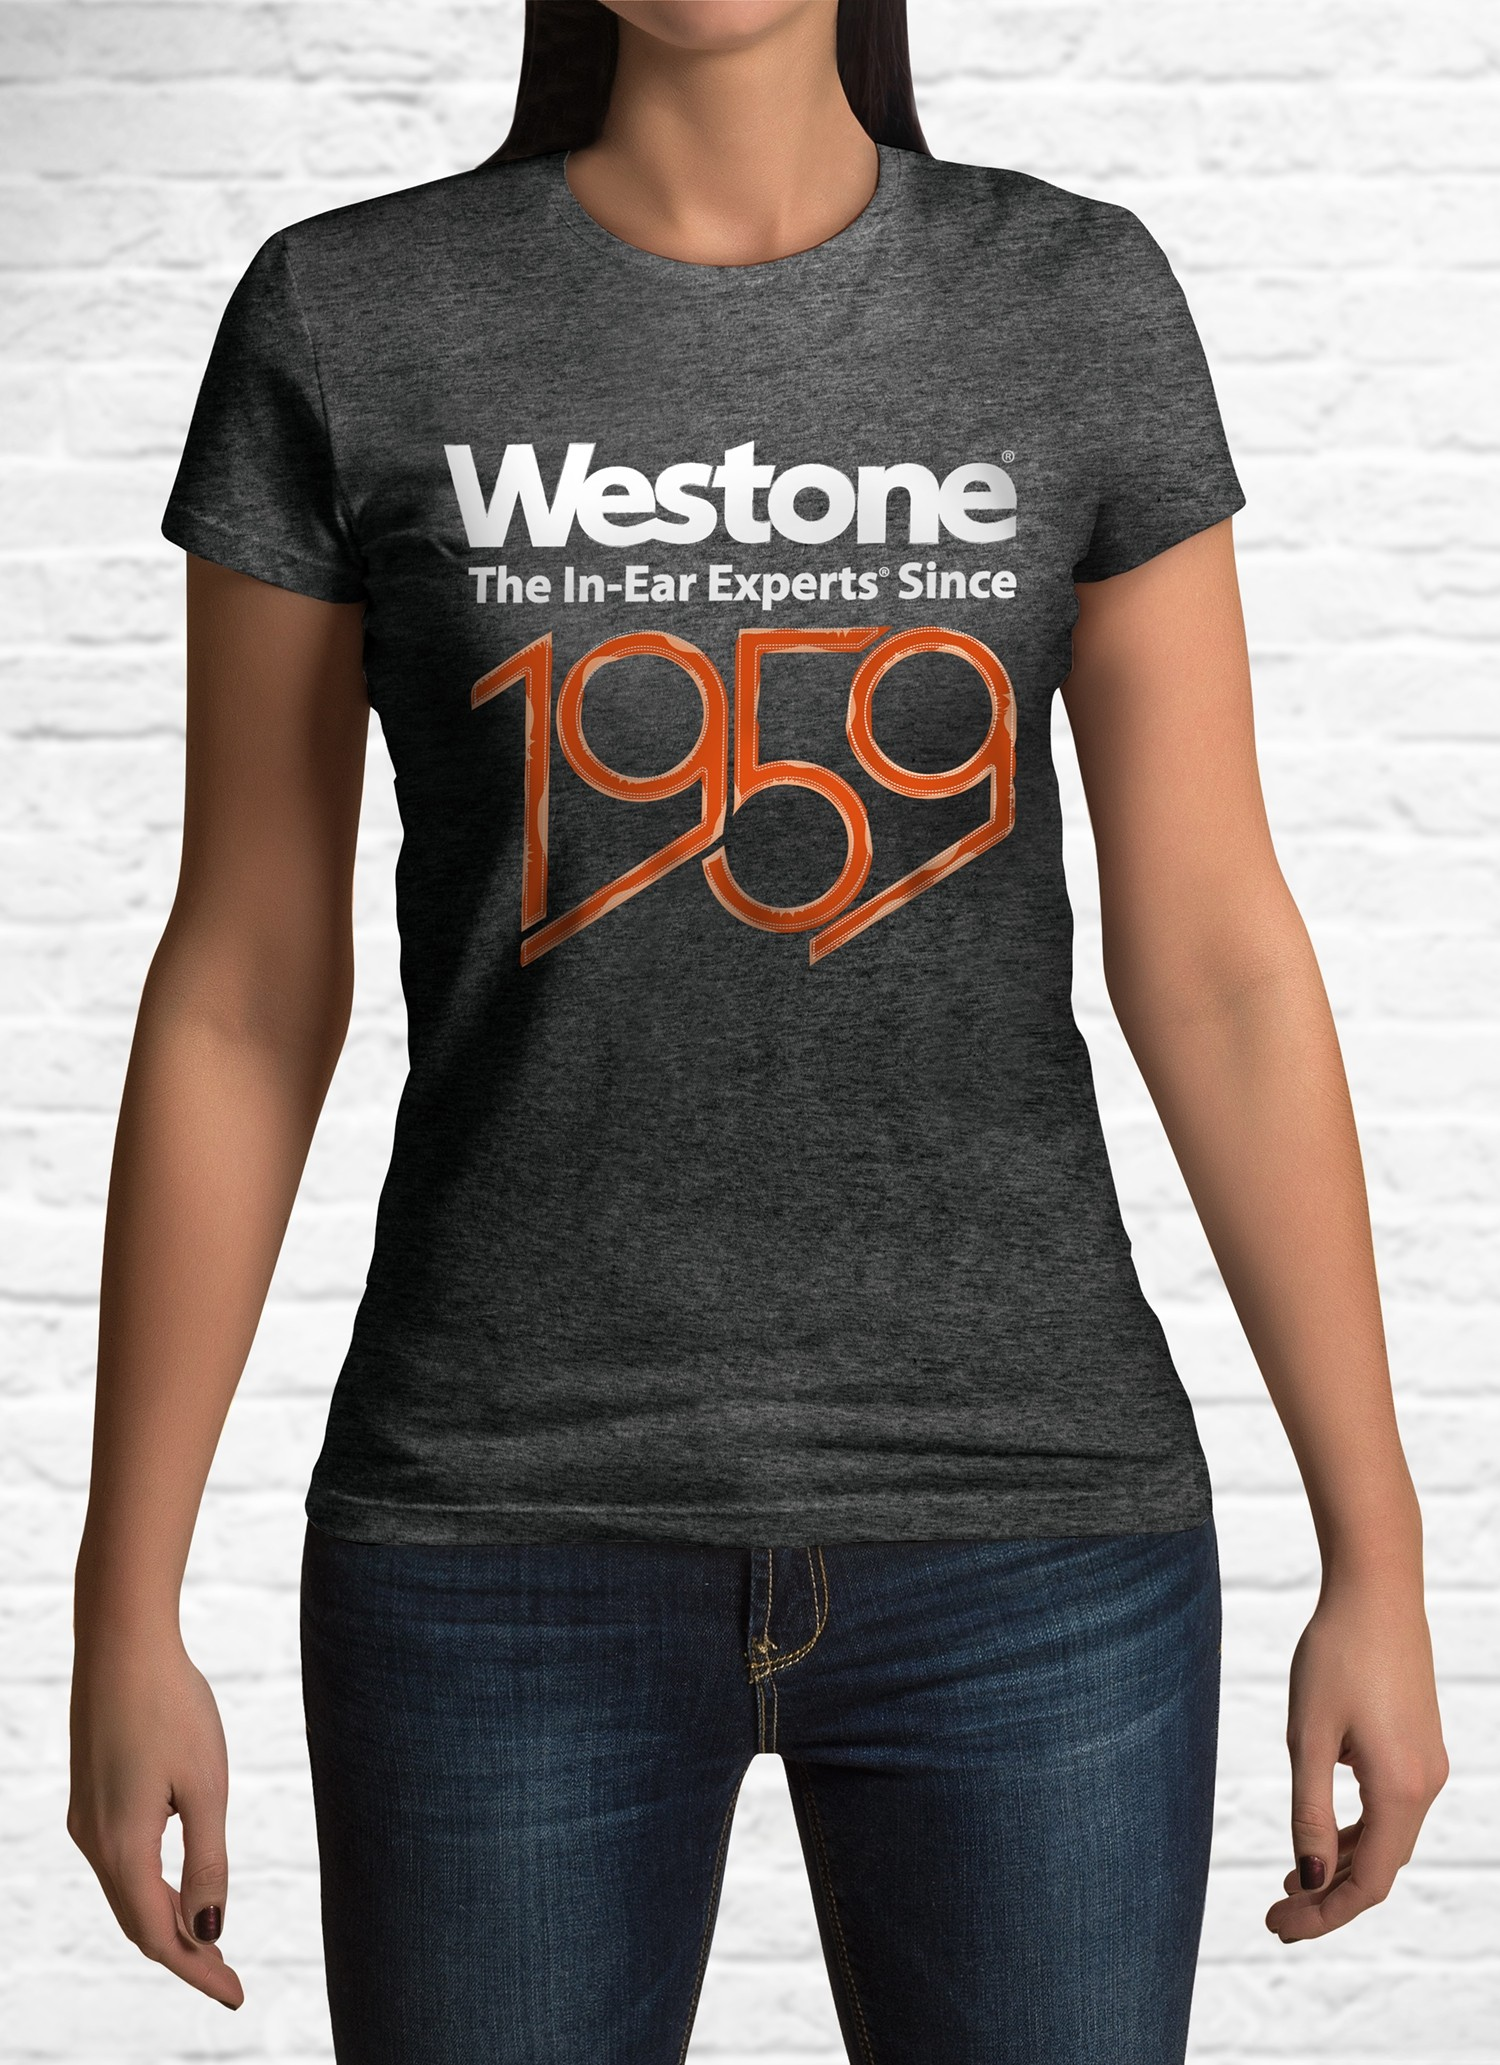 Westone Since 1959 T-Shirt Womens, Medium, Charcoal